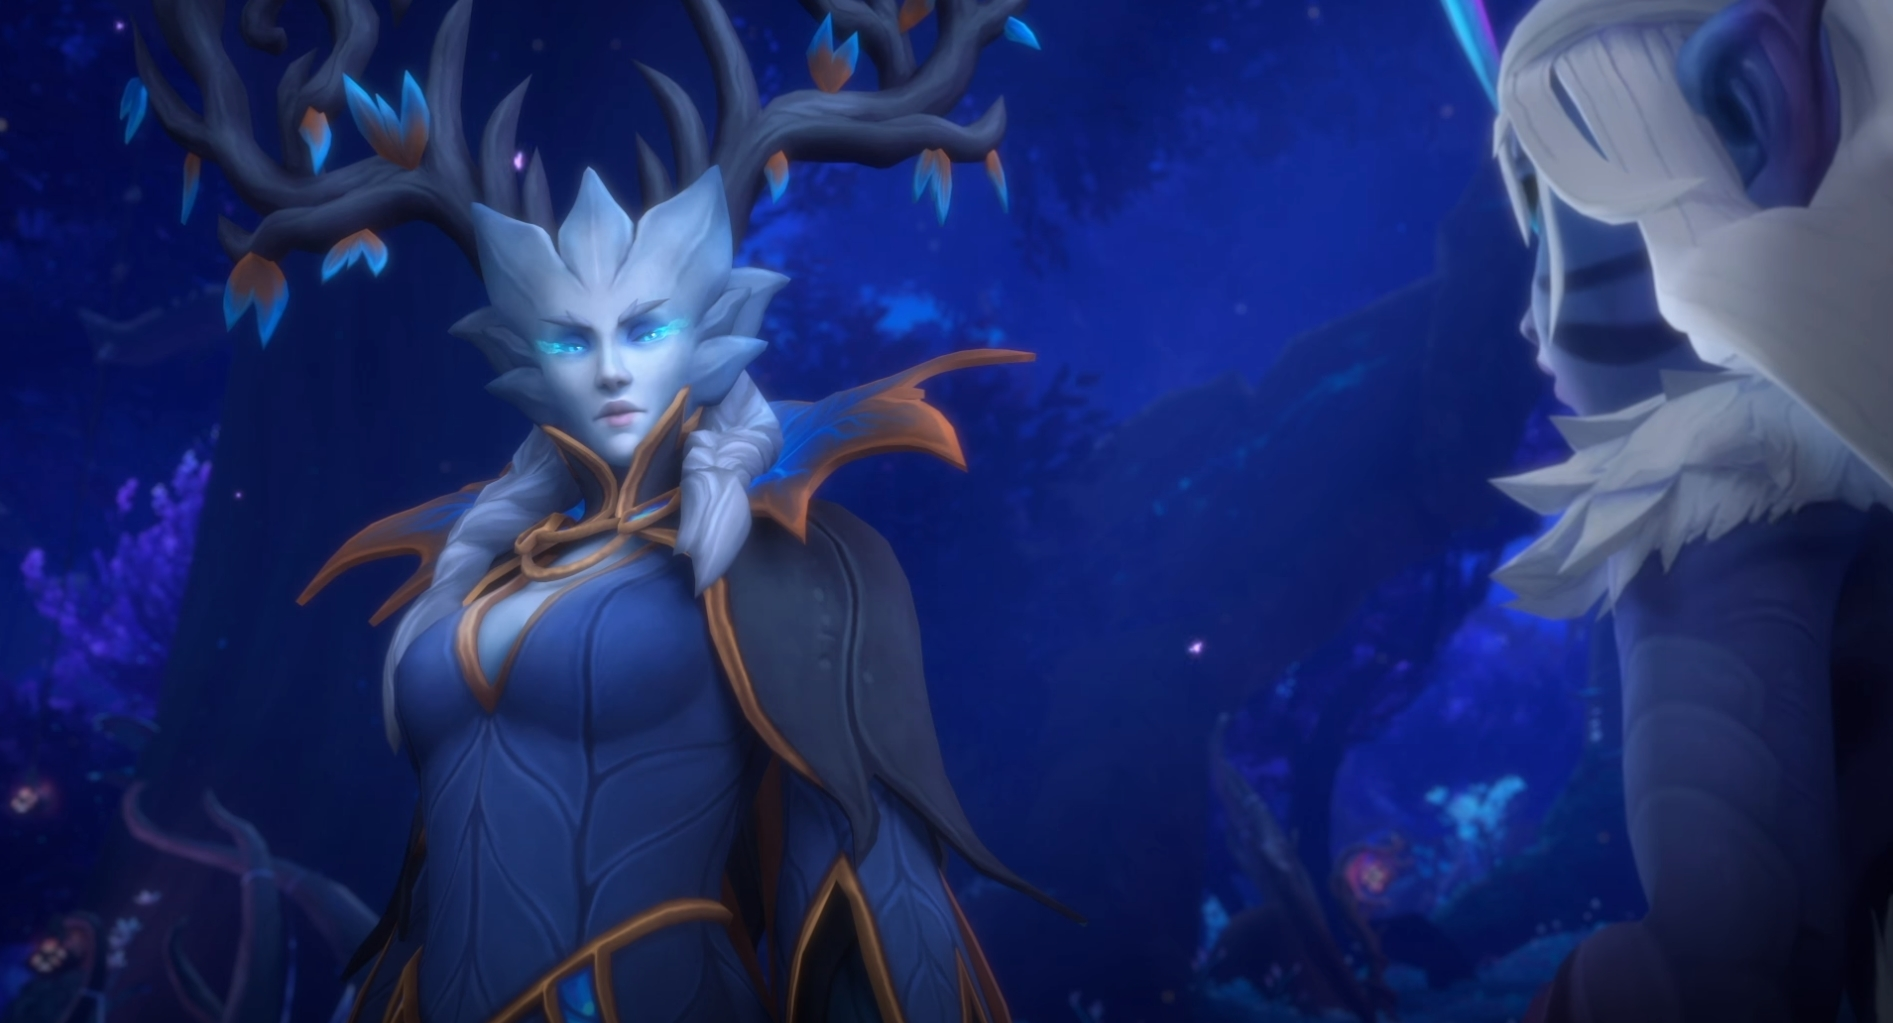 World Of Warcraft: Shadowlands Community Continues To Lament The Extremely Low Drop Chances Of Endgame Gear